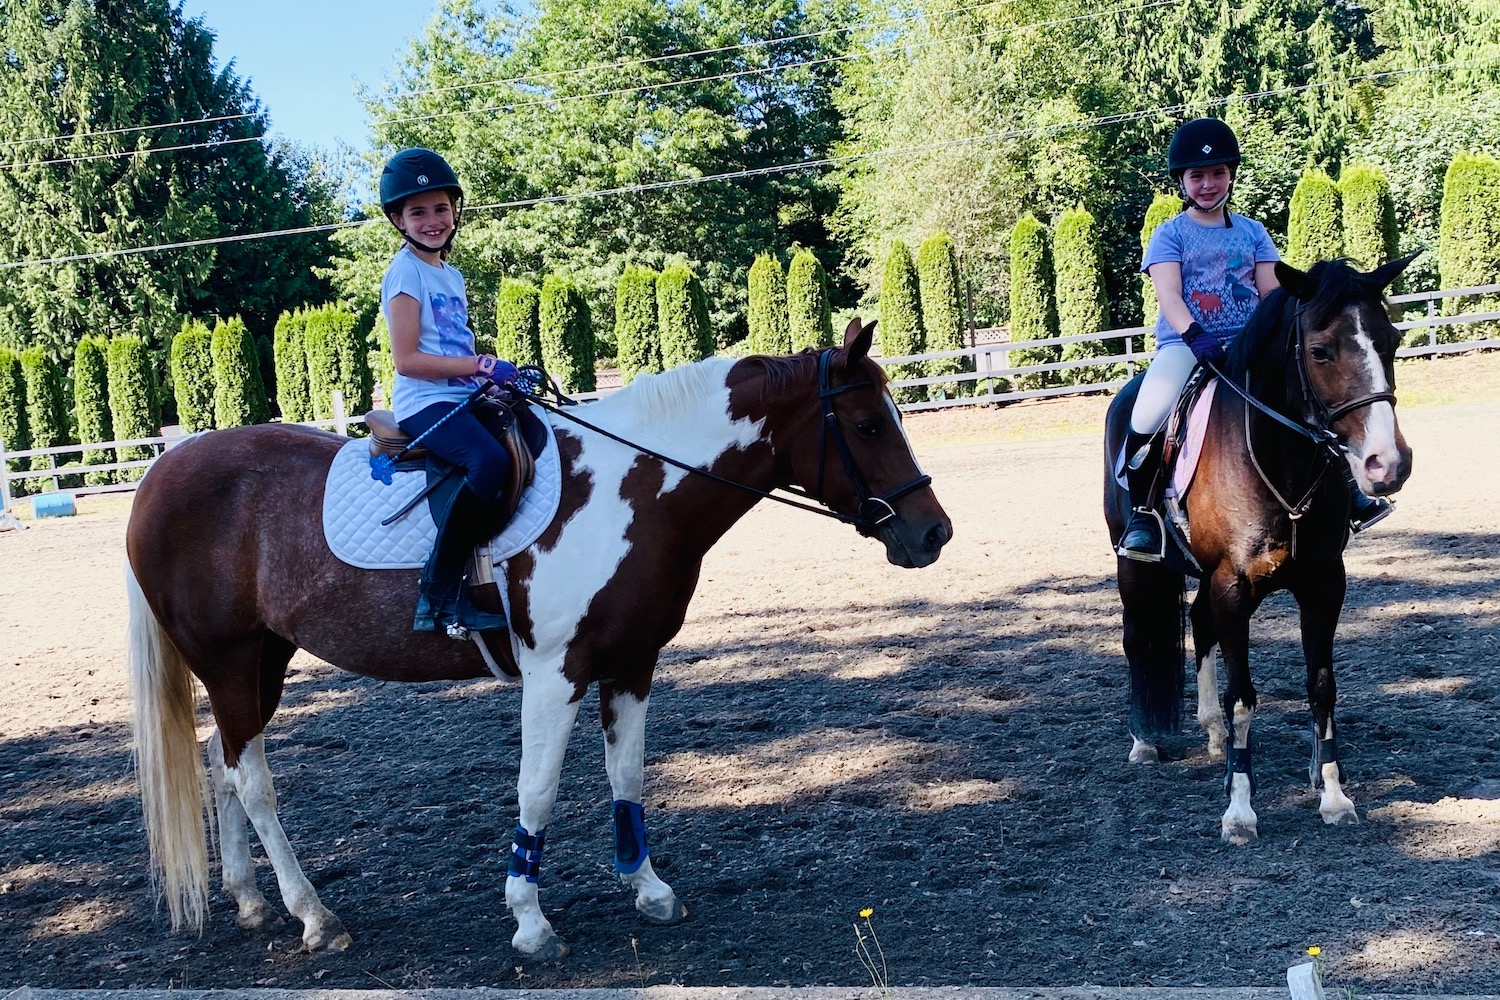 Young riders on ponies